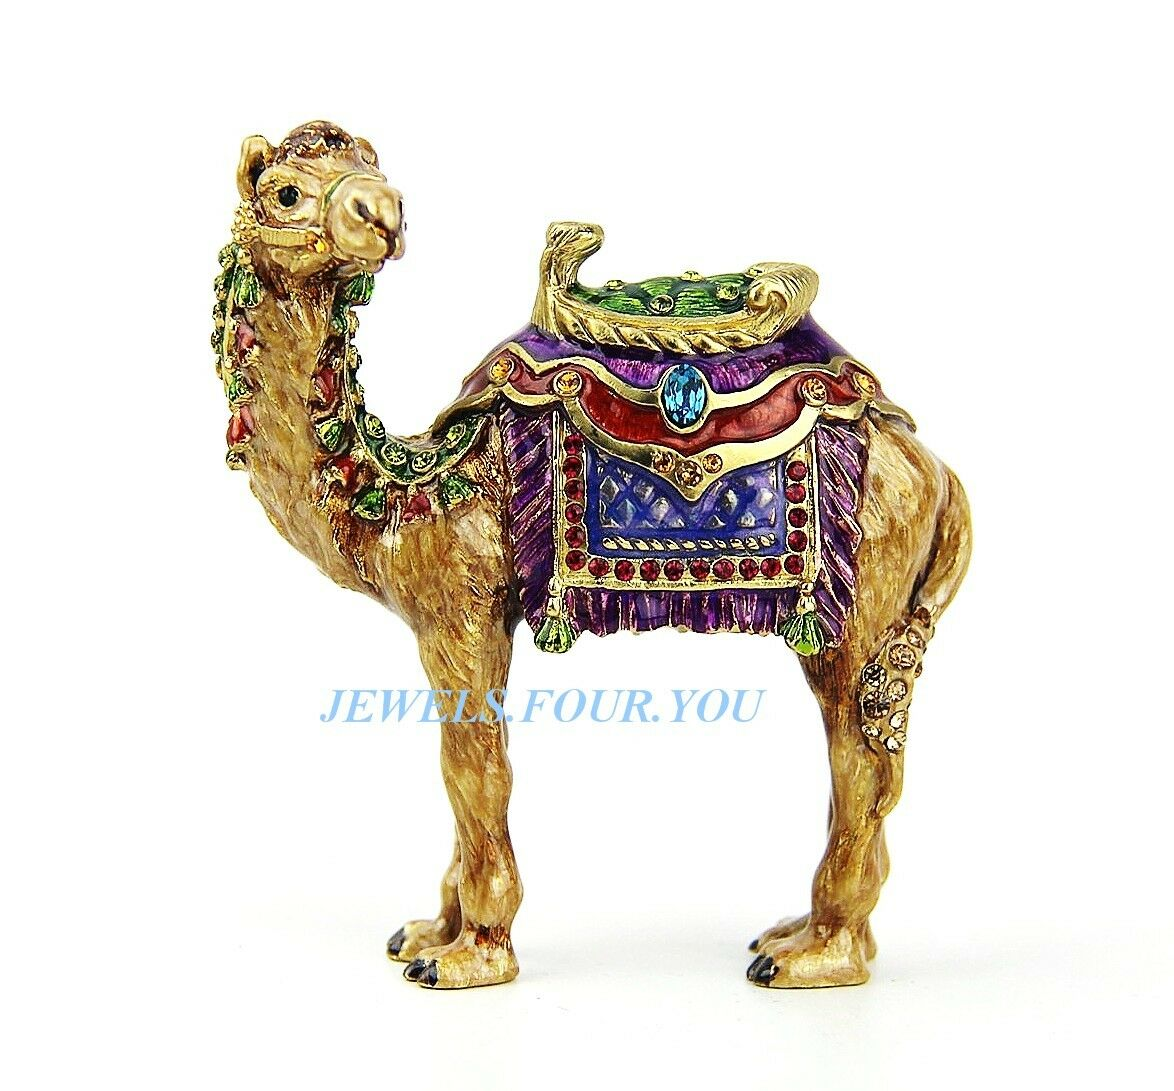 JAY STRONGWATER JEWEL DUNCAN CAMEL FIGURINE SWAROVSKI NEW ORIGINAL BOX